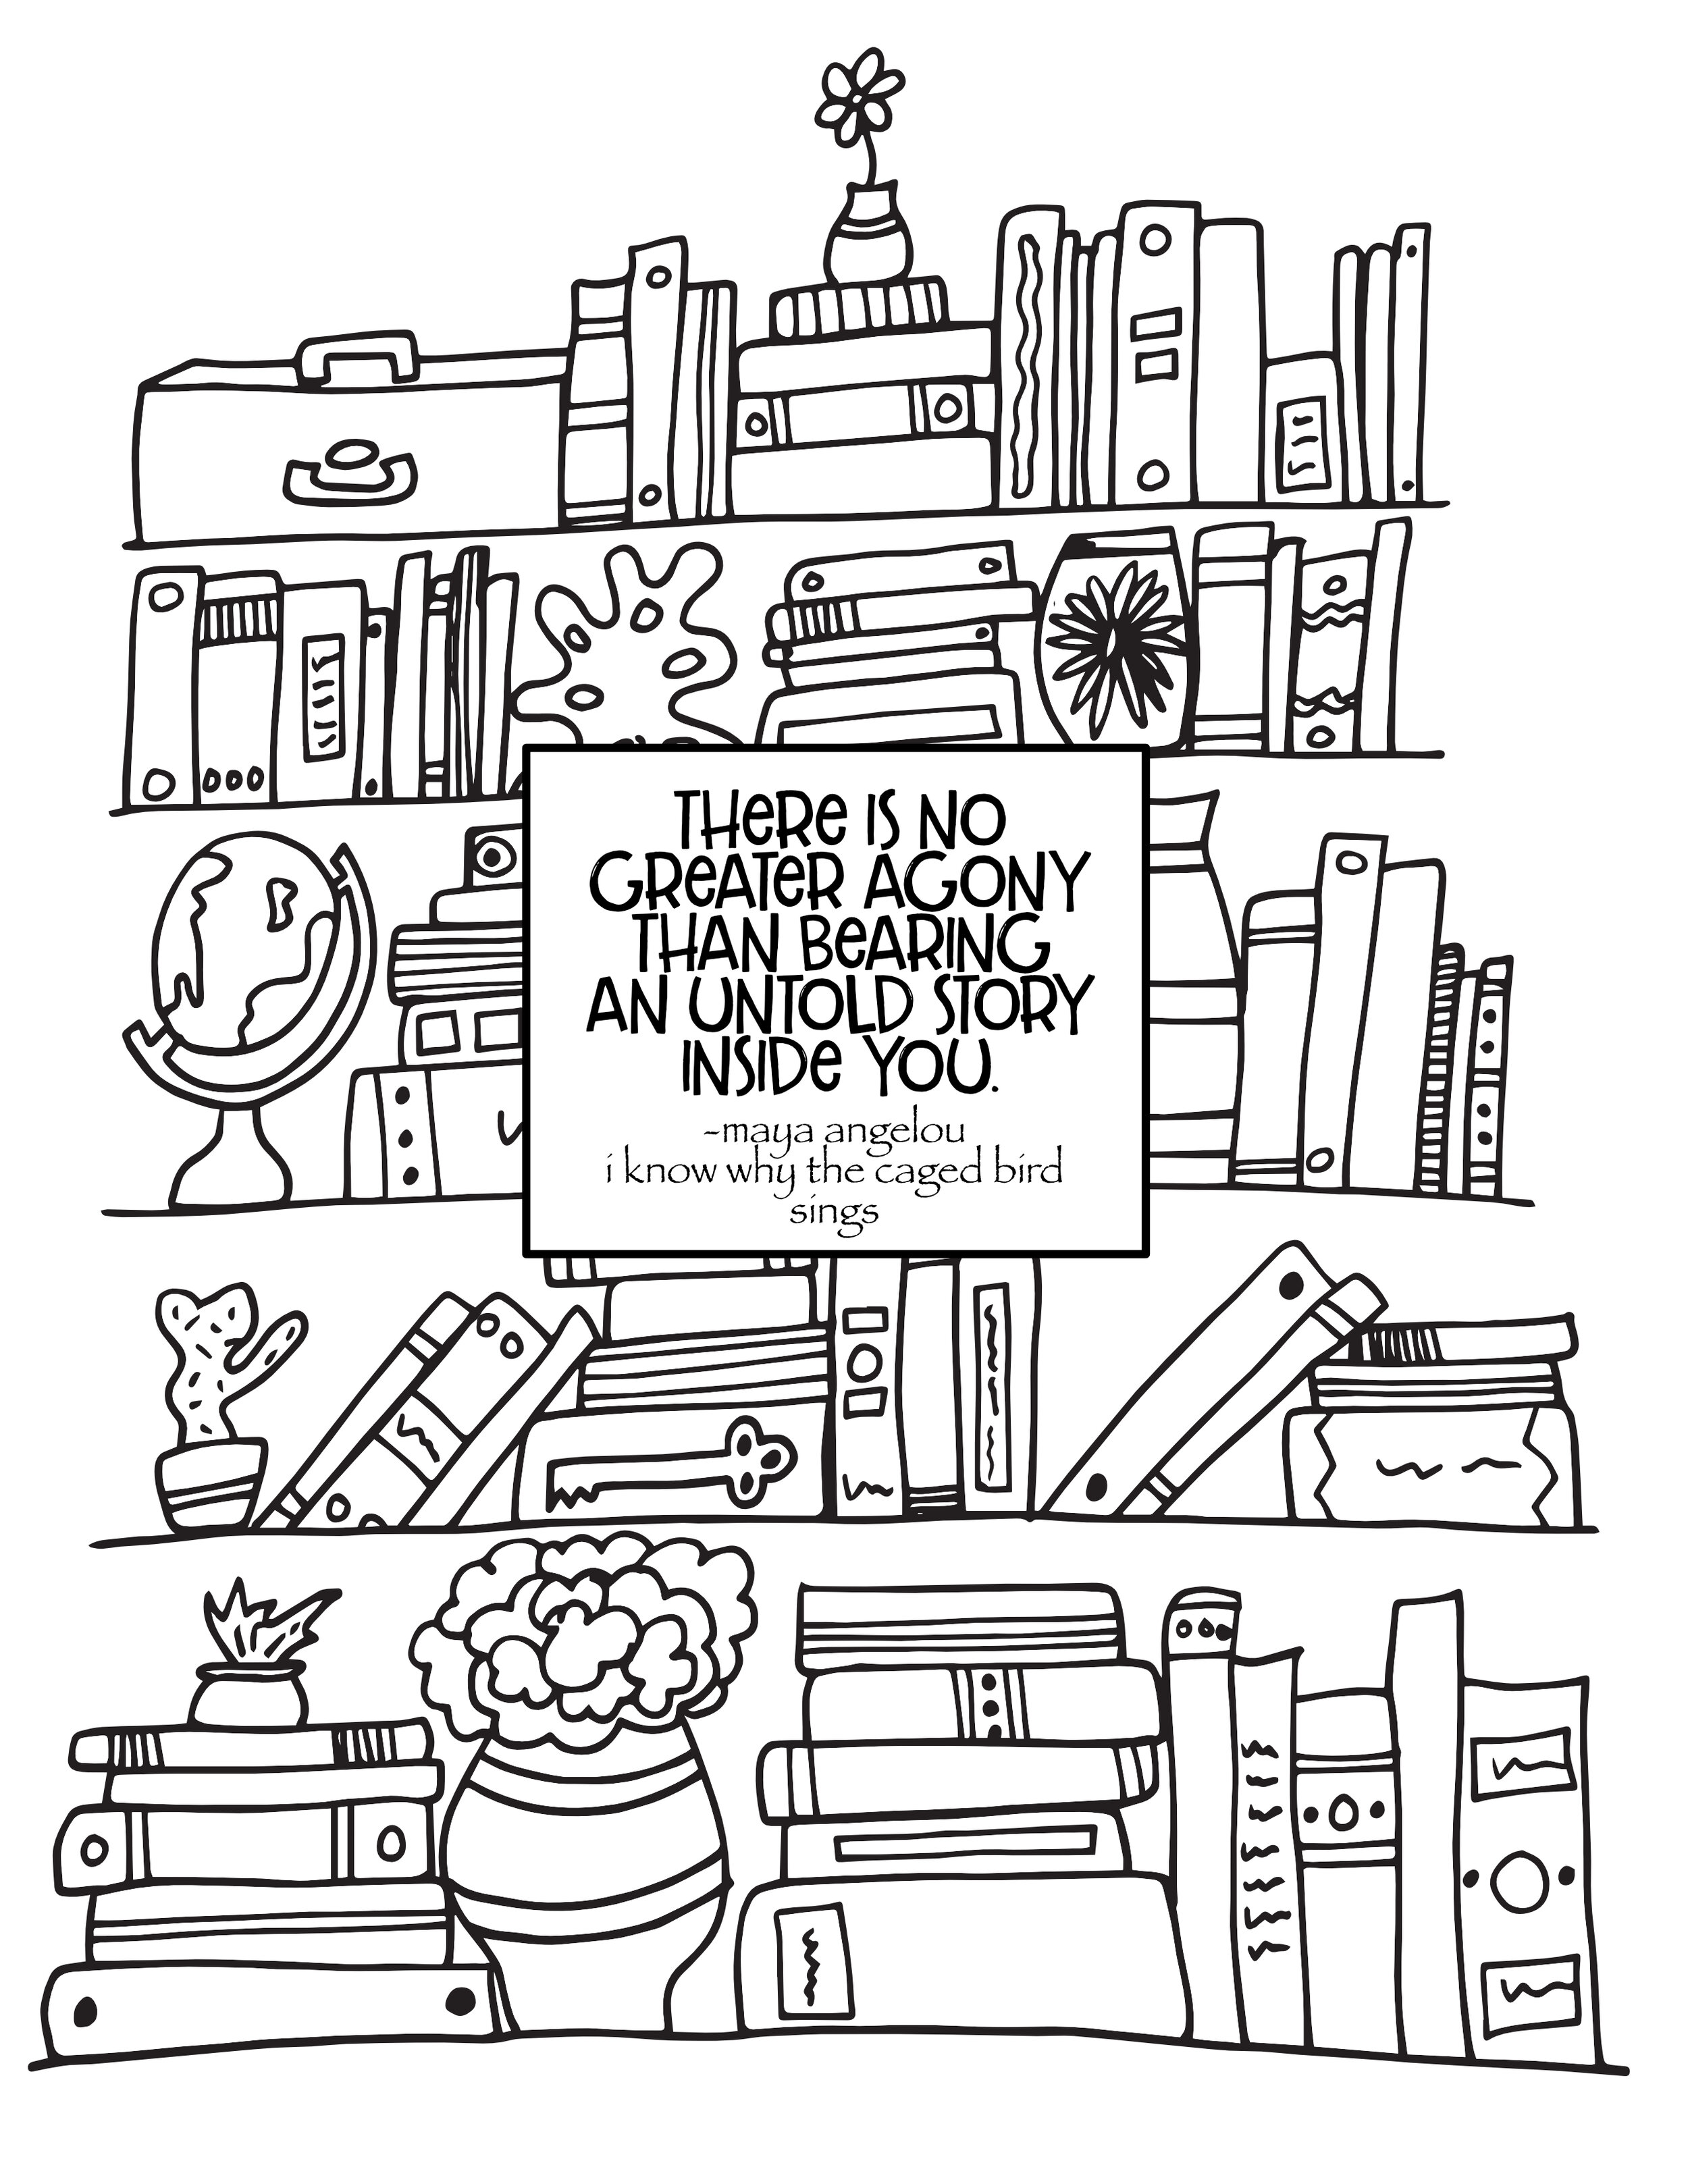 - Why The Caged Bird Sings Quote - Free Bookshelf Coloring Page